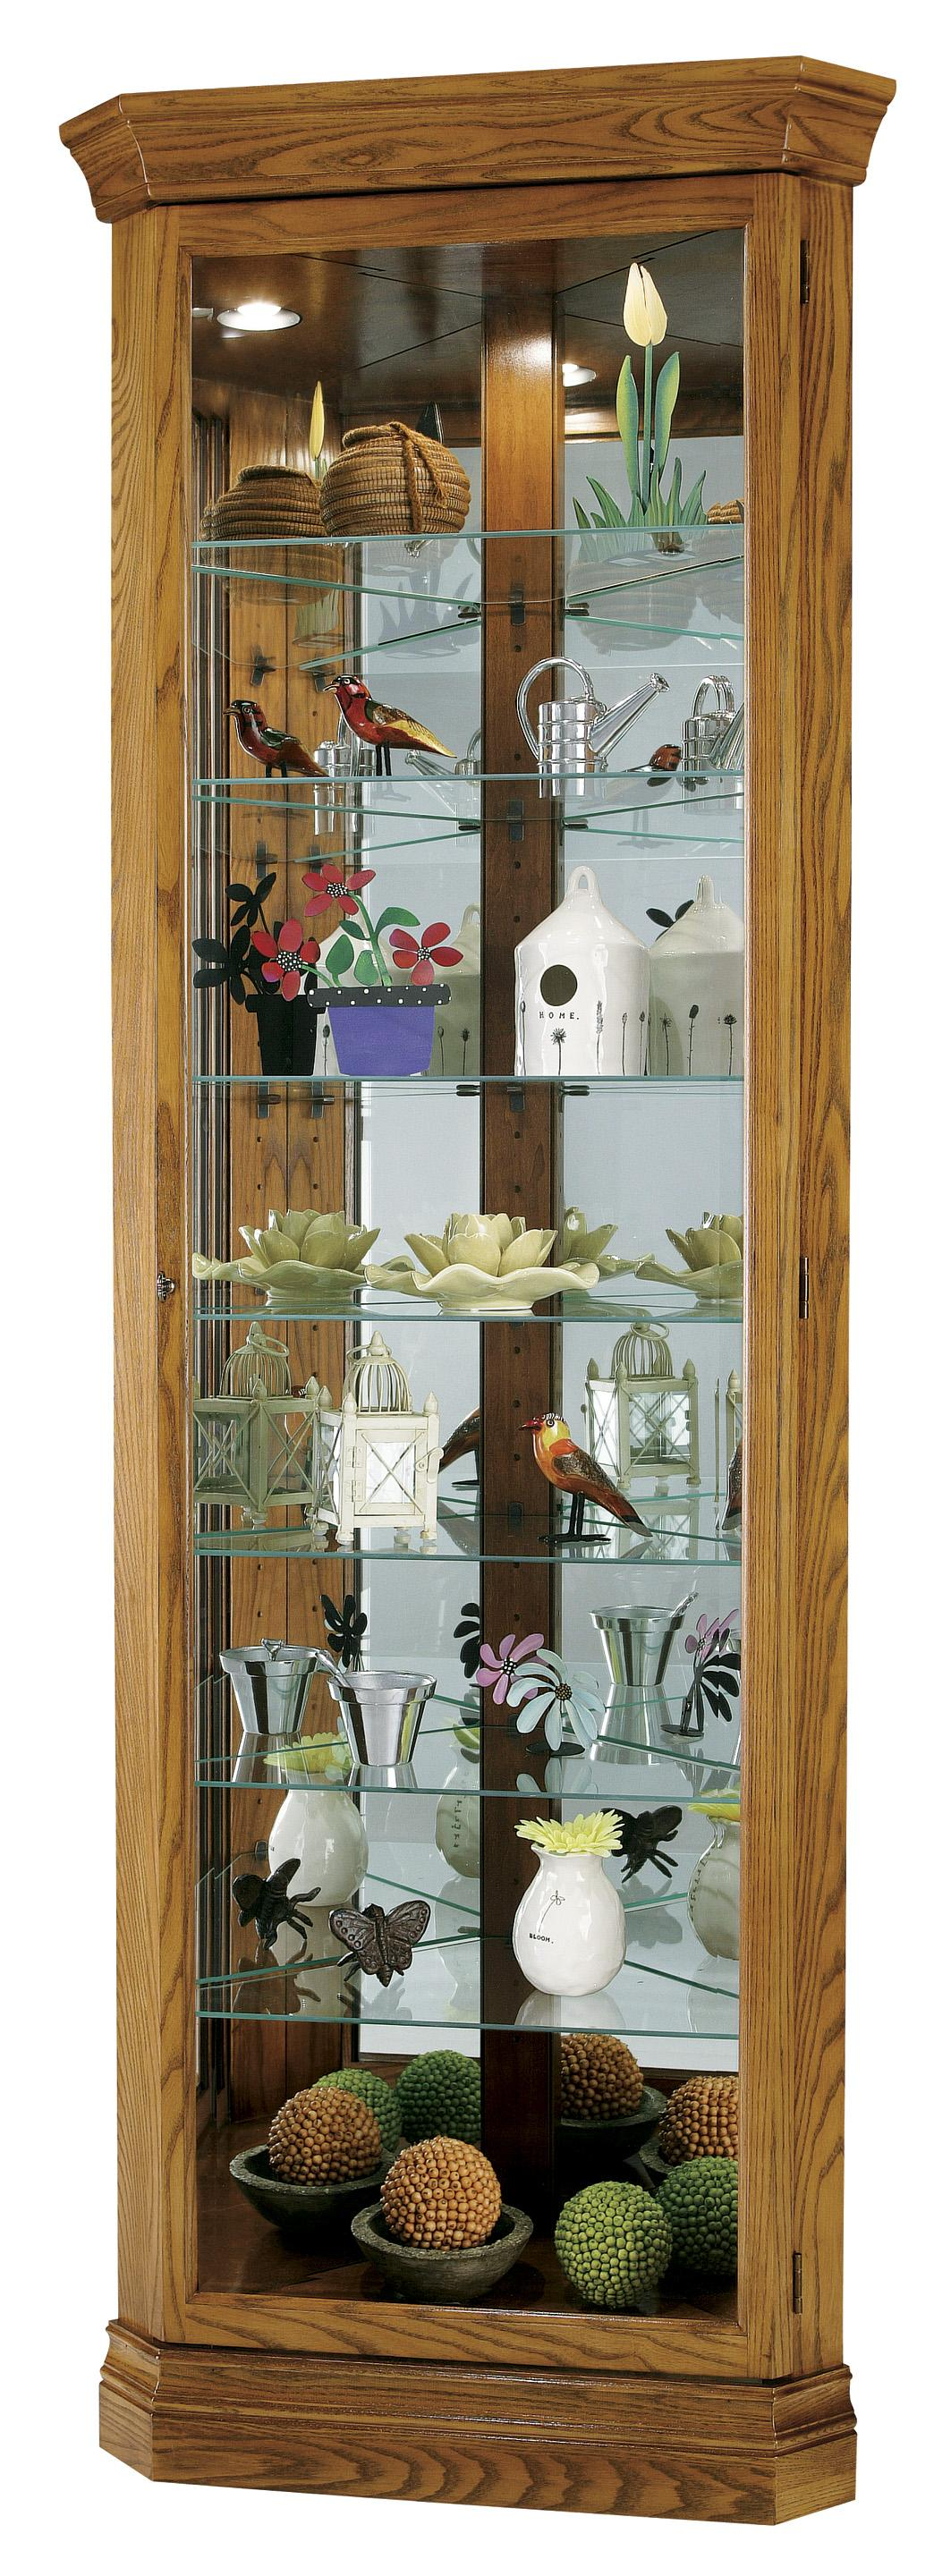 Morris Home Furnishings Corner Curios Gable Corner Curio Cabinet - Item Number: 680-485